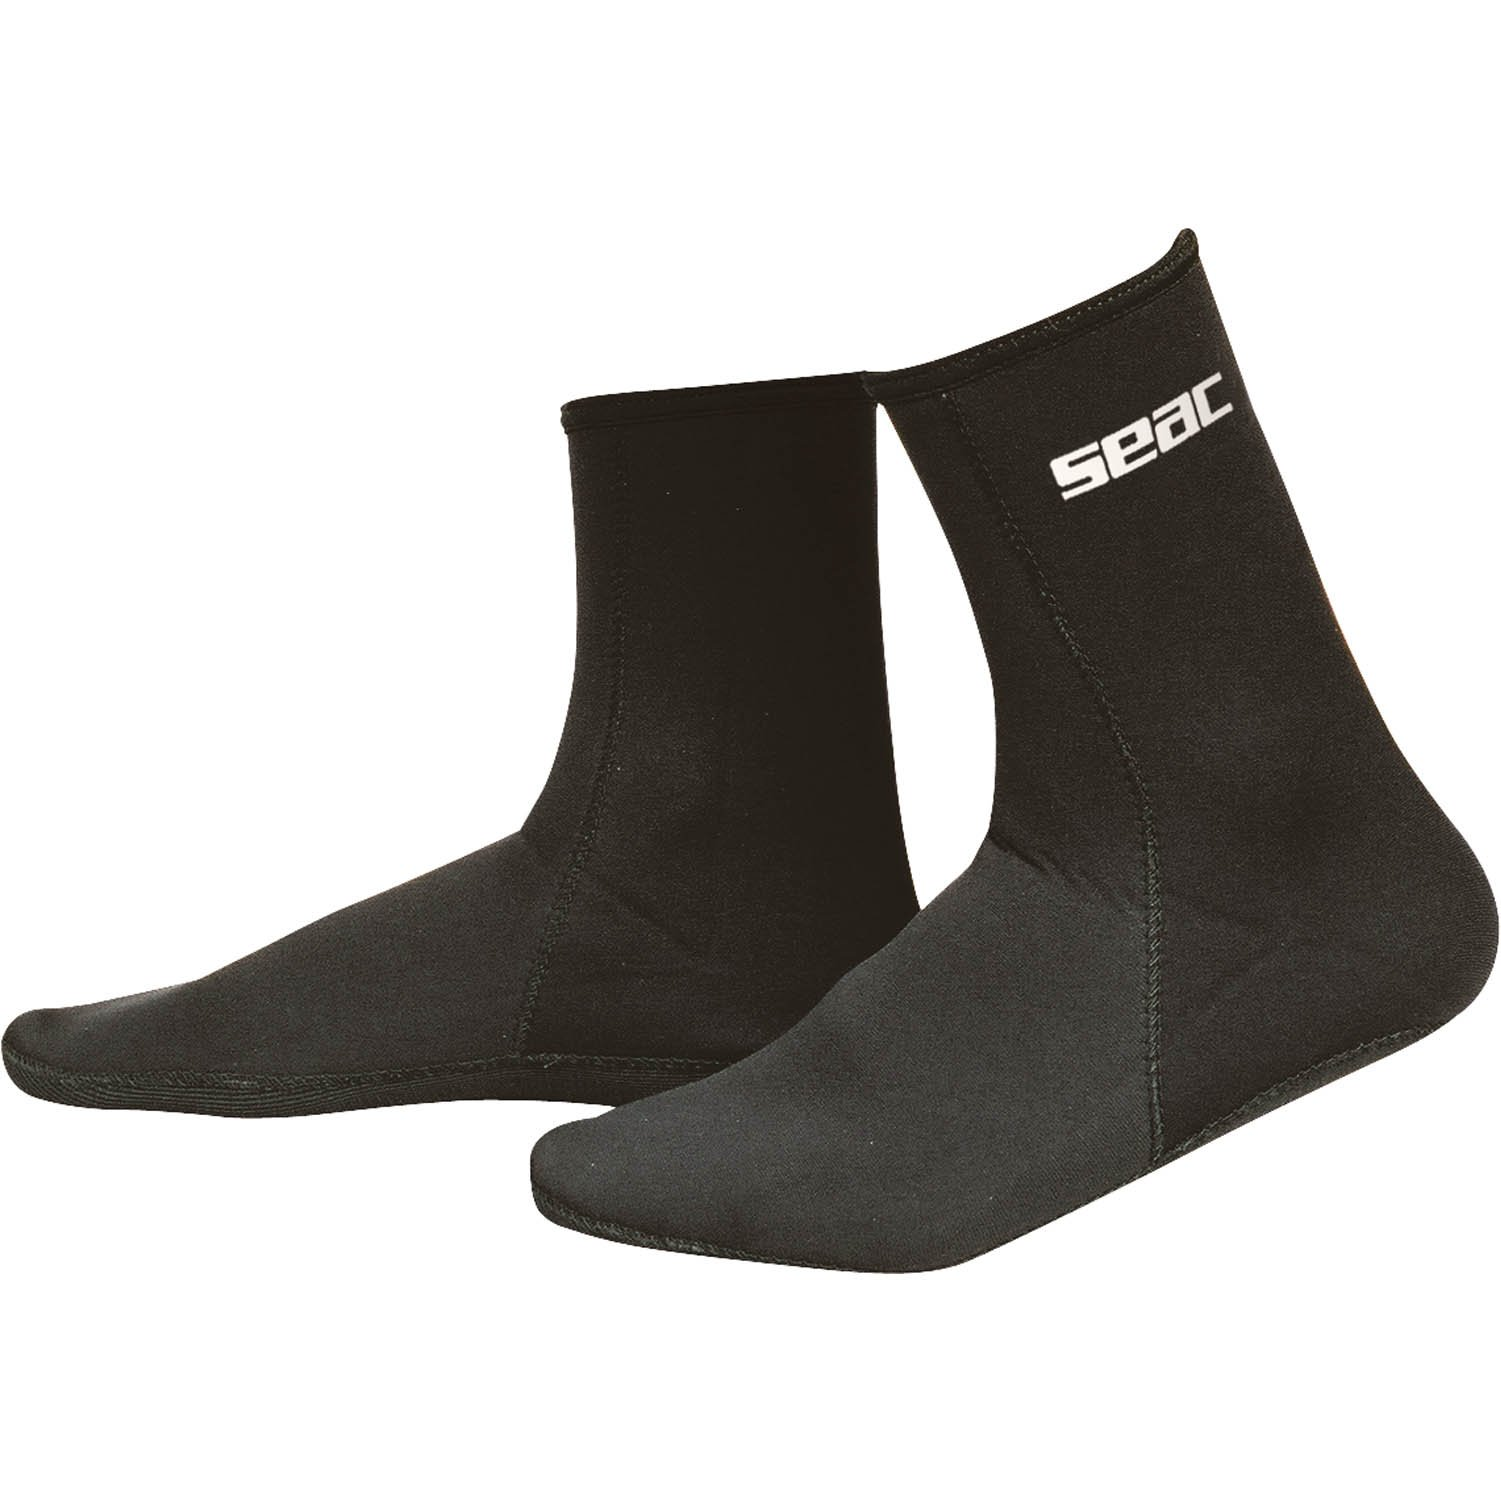 Standard HD 2.5mm Socks